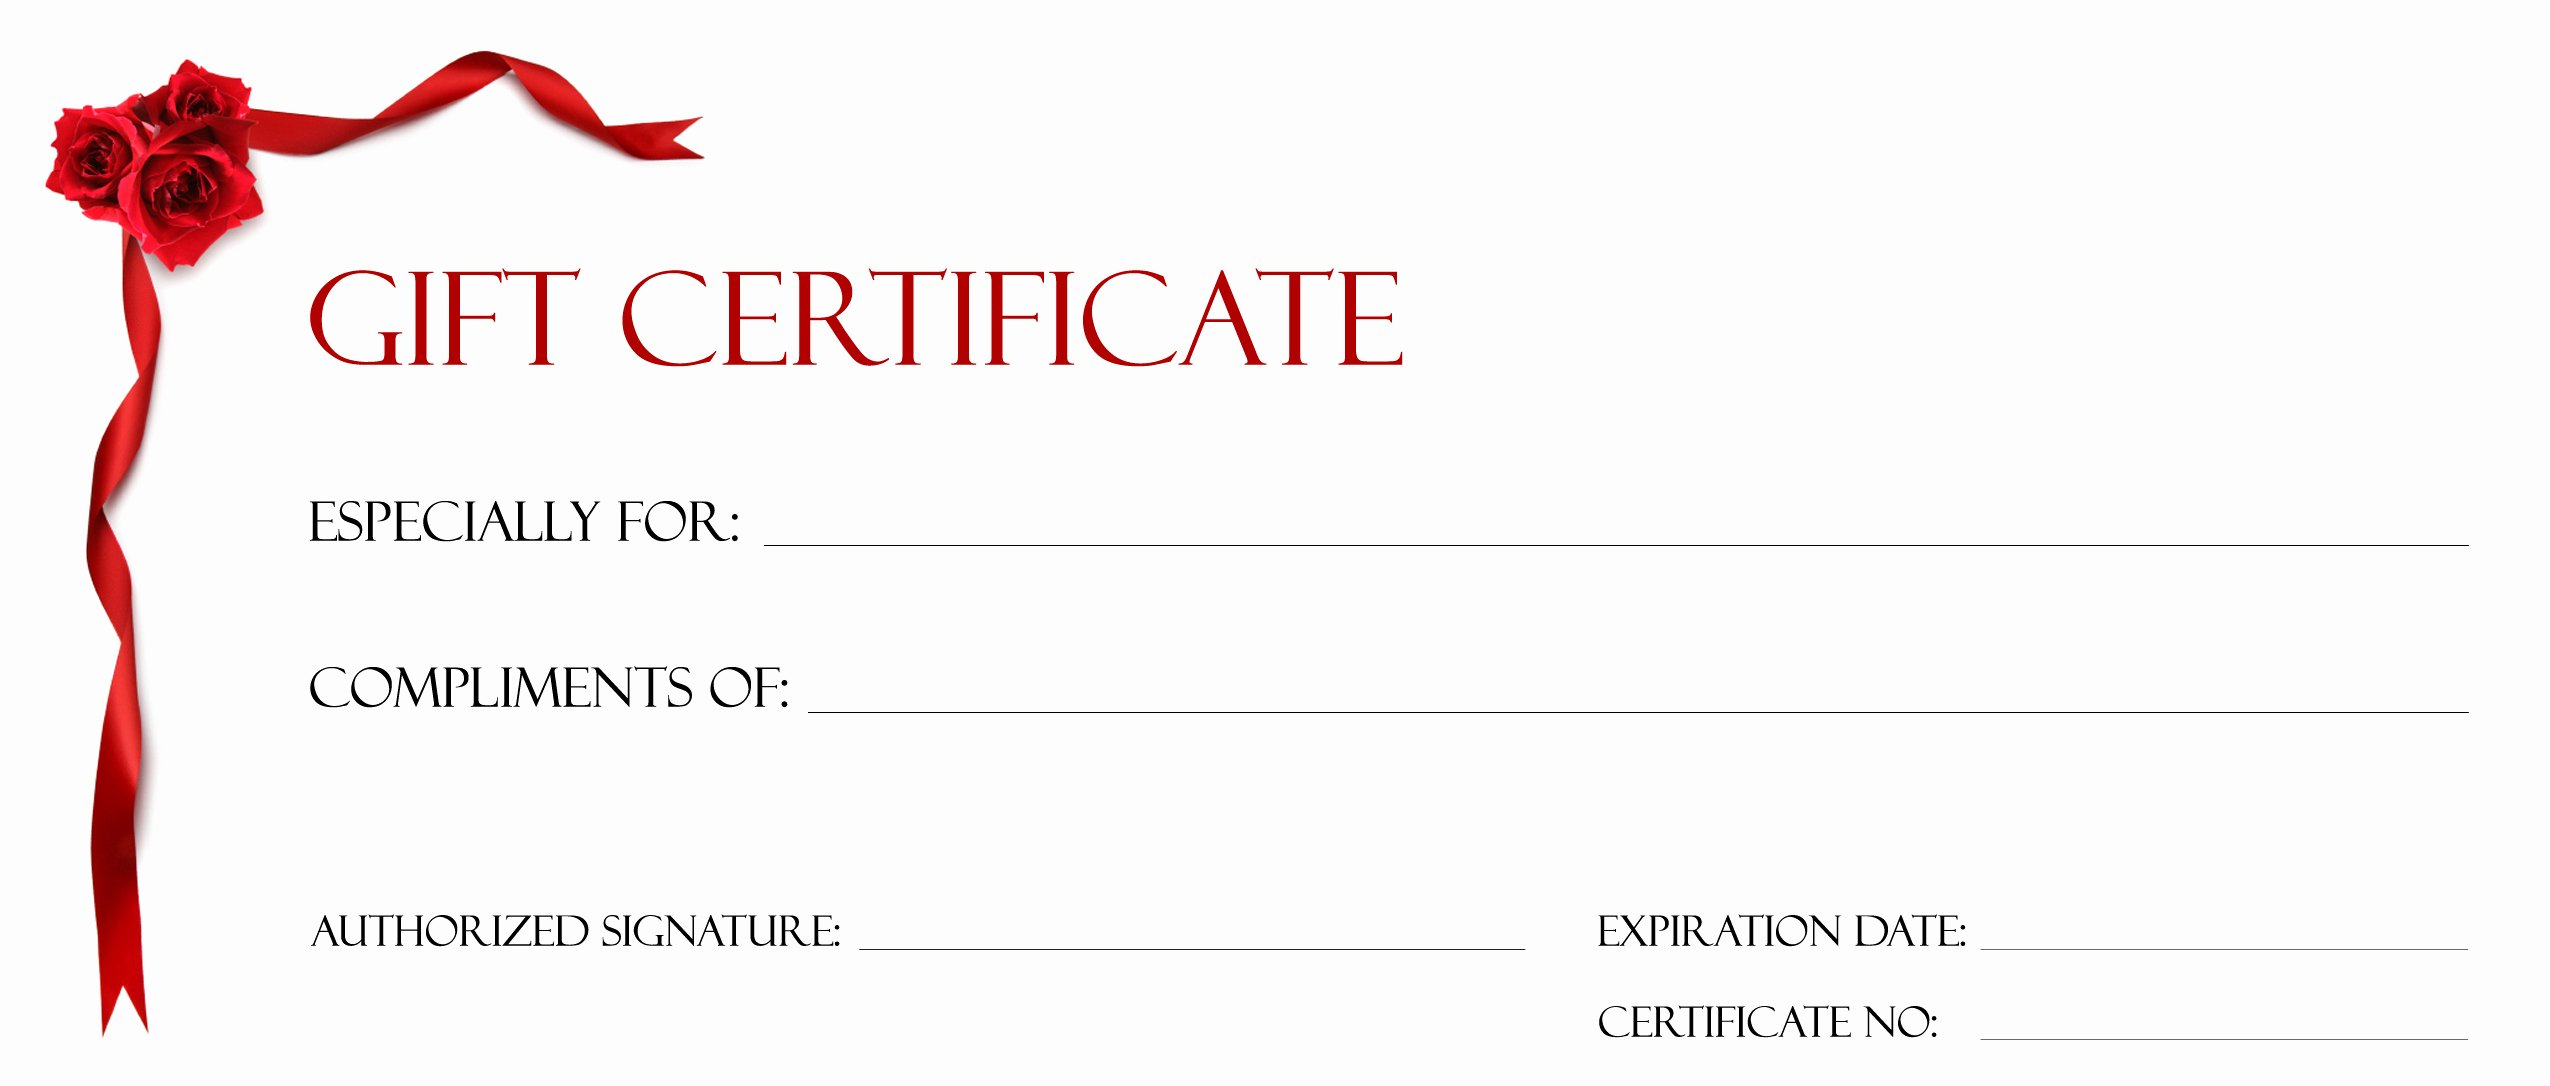 Certificate Template Google Docs Awesome Gift Certificate Make Your Own